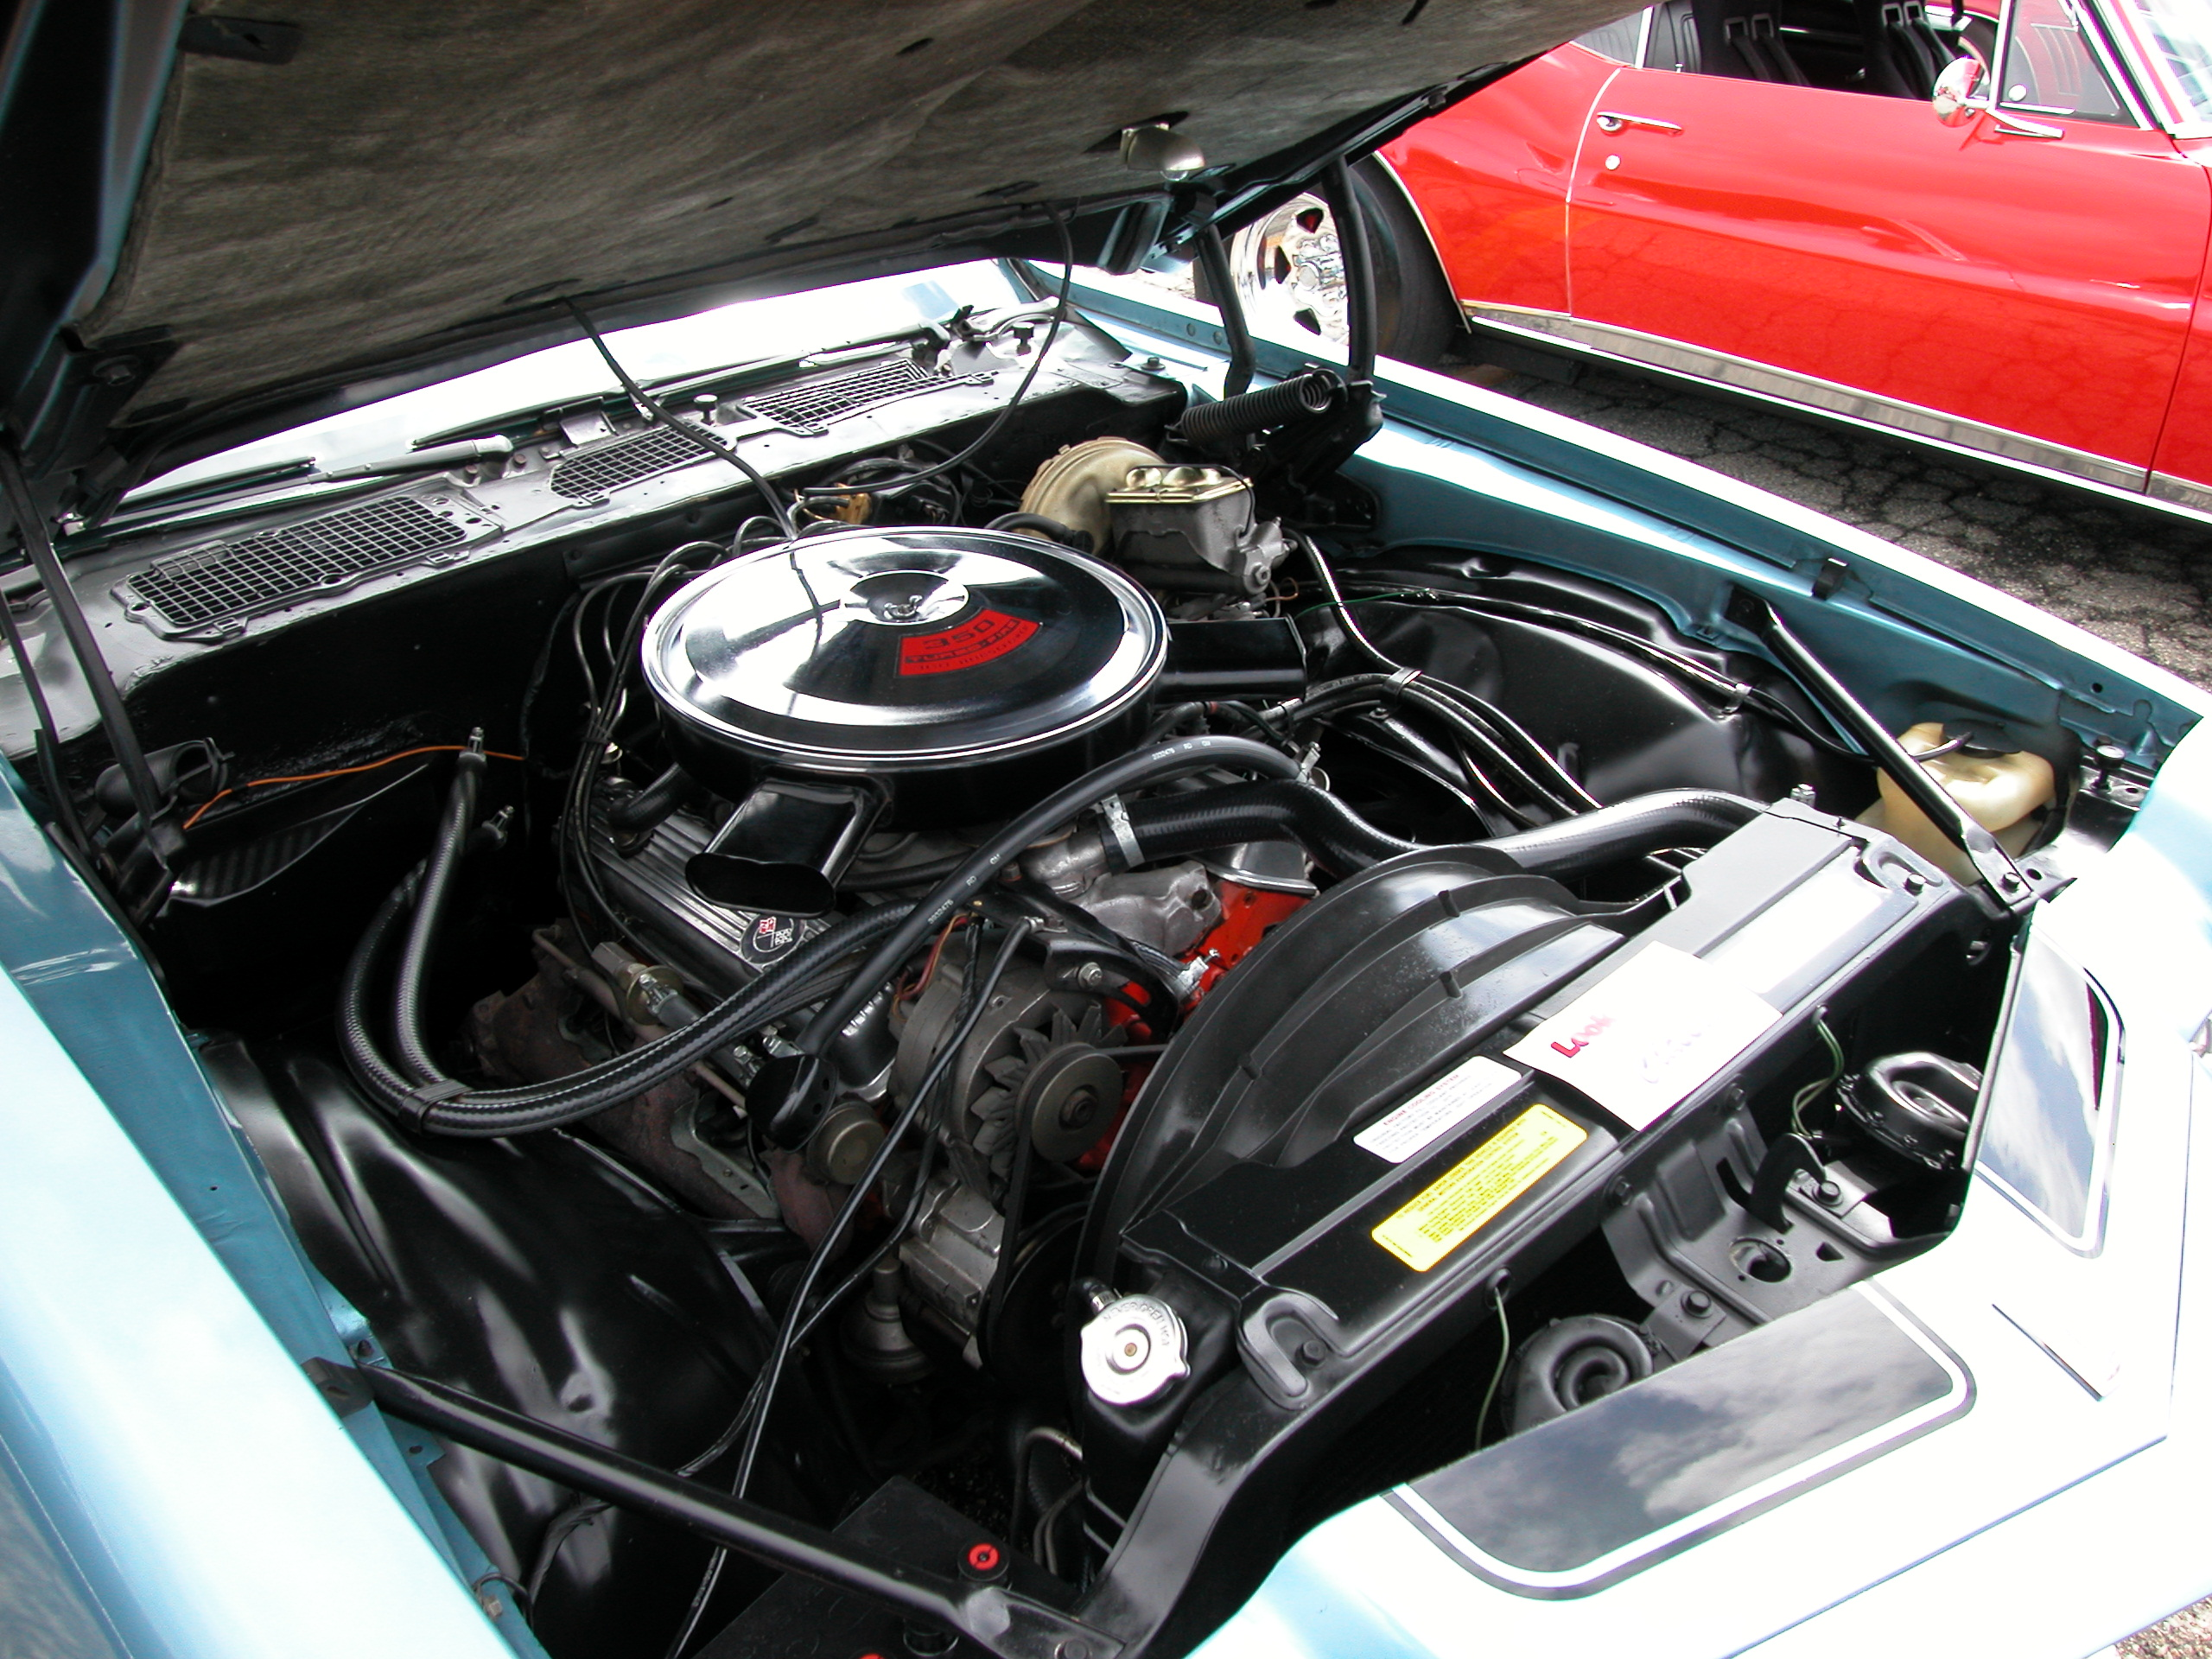 1967 Chevrolet Camaro Engine Compartment Wiring Diagram from static-cdn.imageservice.cloud